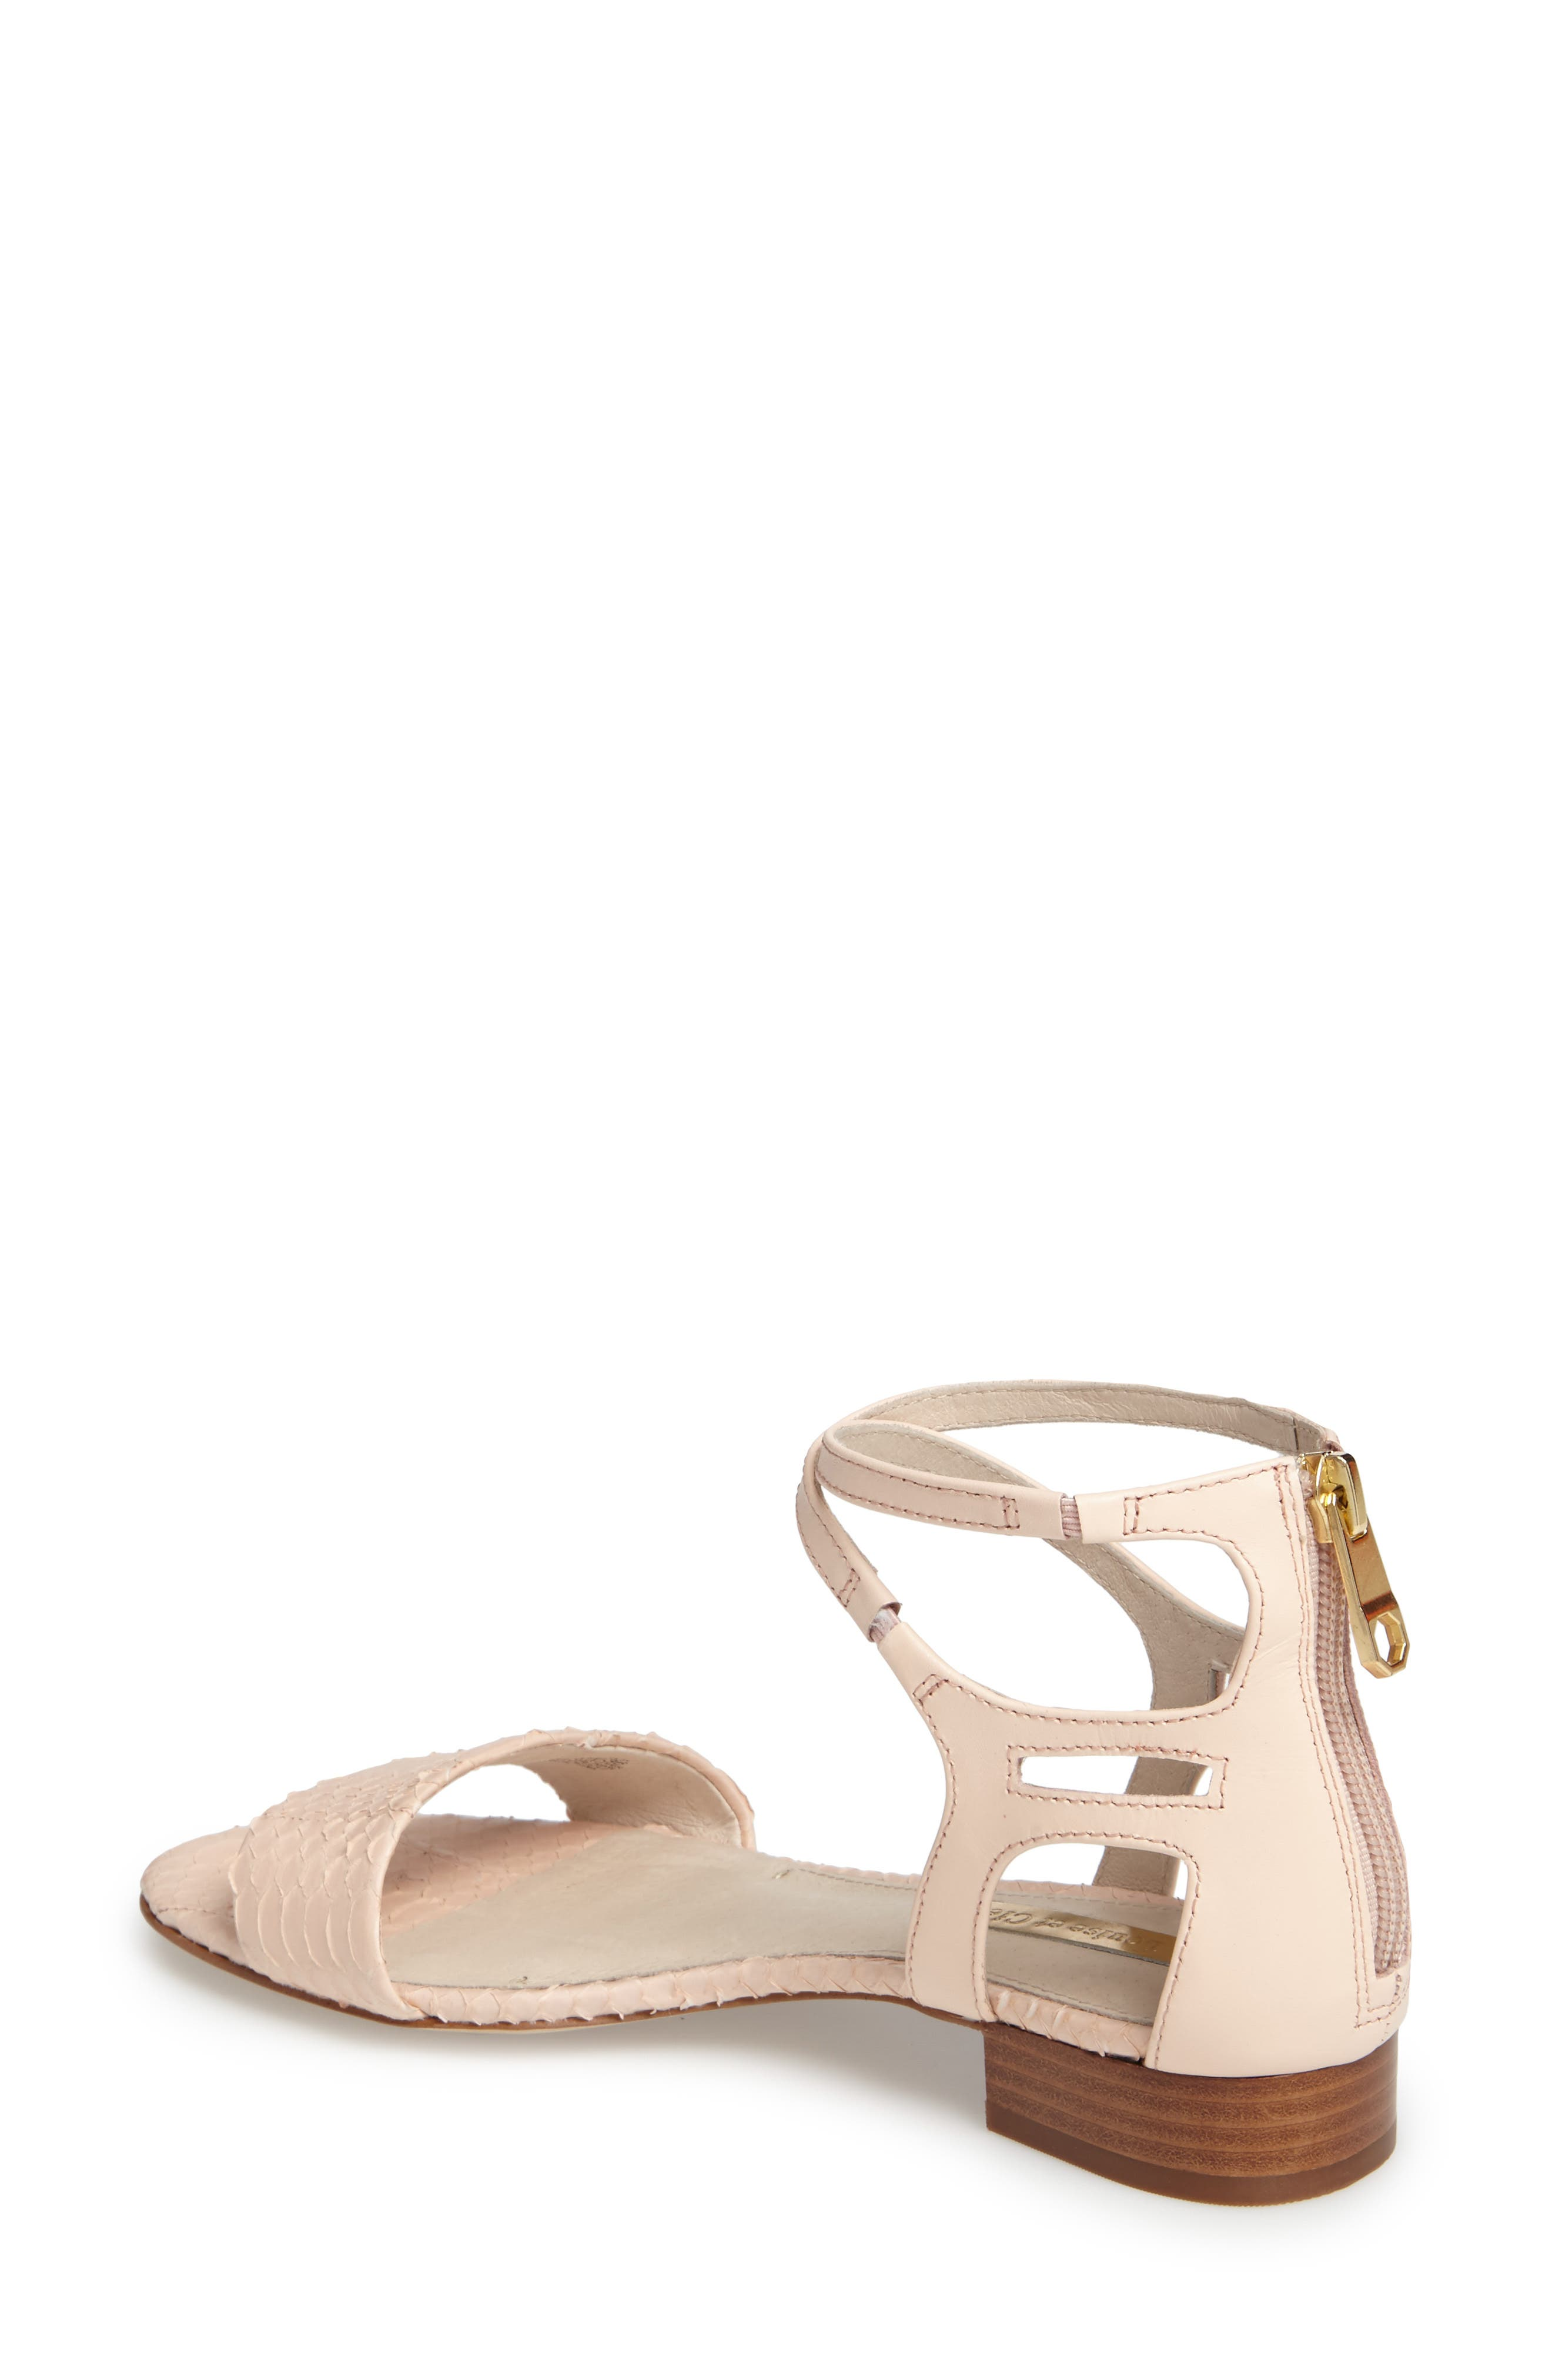 Adley Ankle Strap Sandal,                             Alternate thumbnail 2, color,                             Mimosa Leather